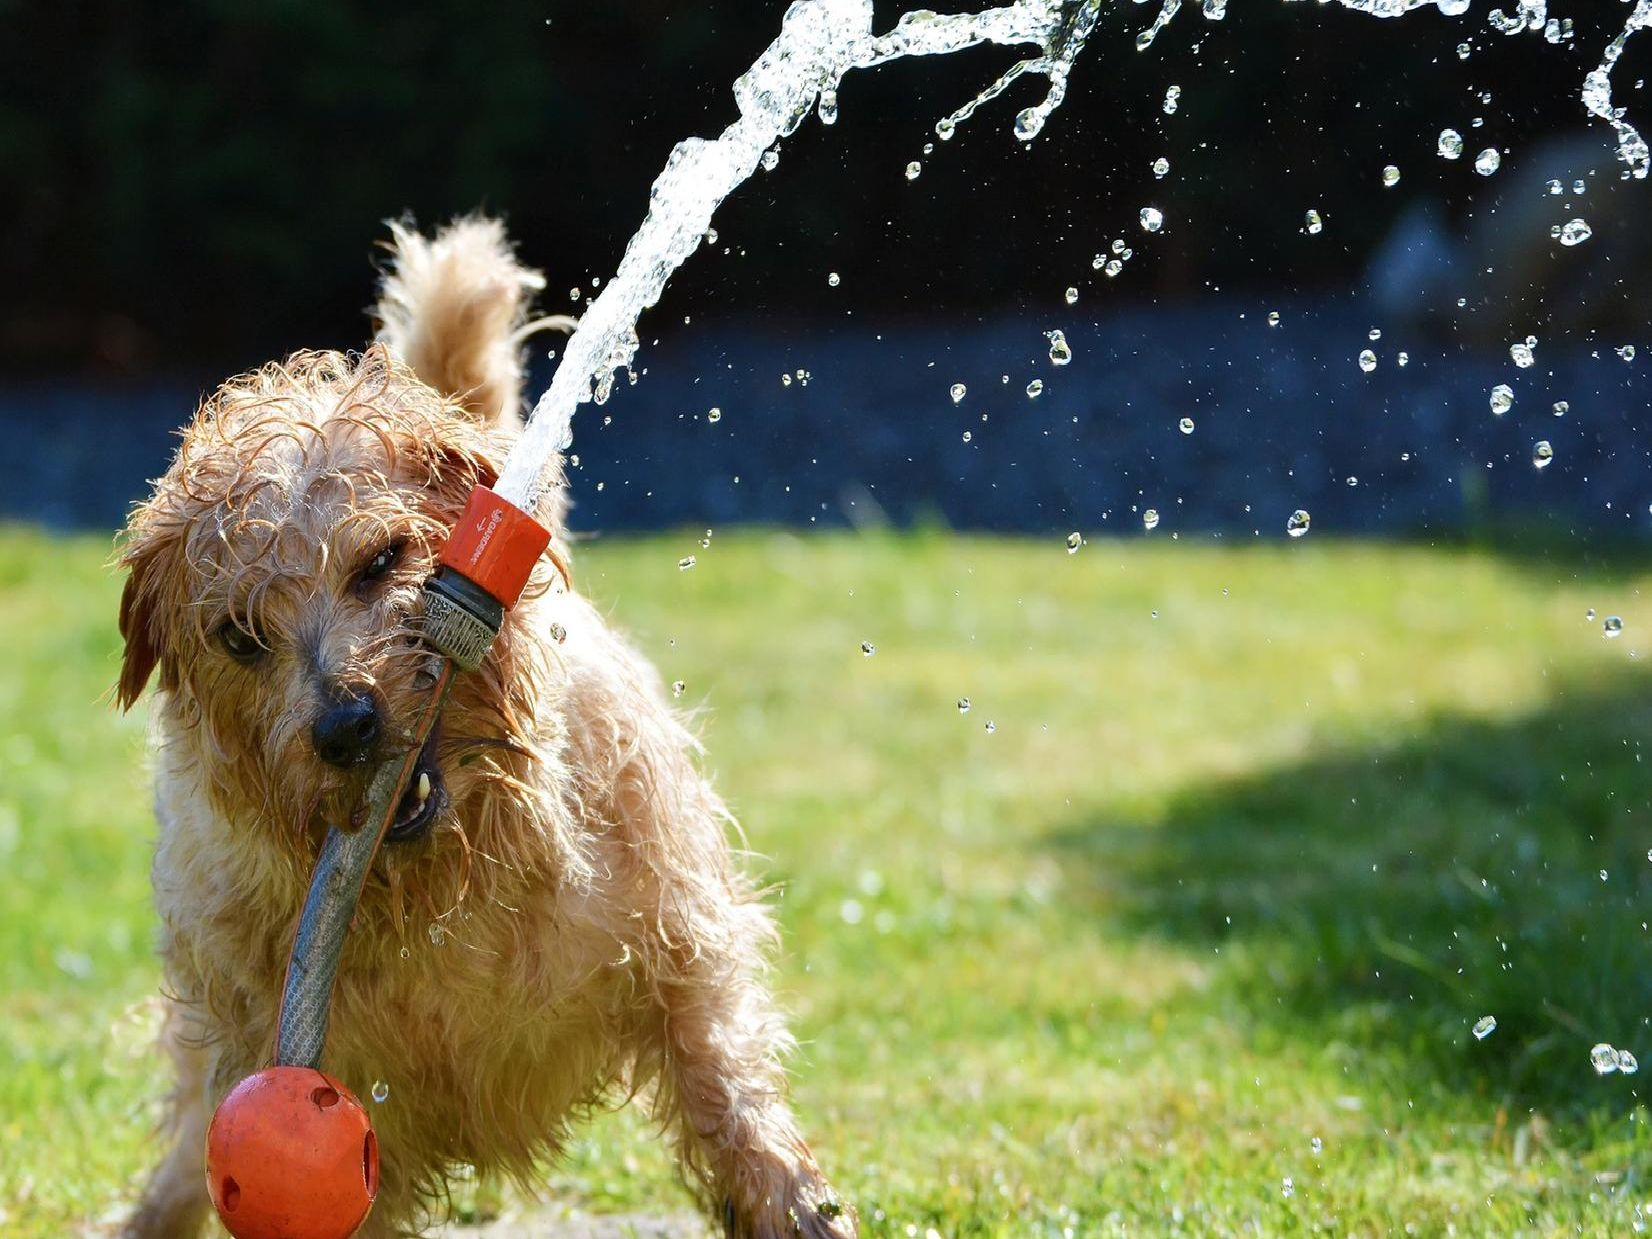 Play time can suddenly cause problems for you and your dog if you're not careful